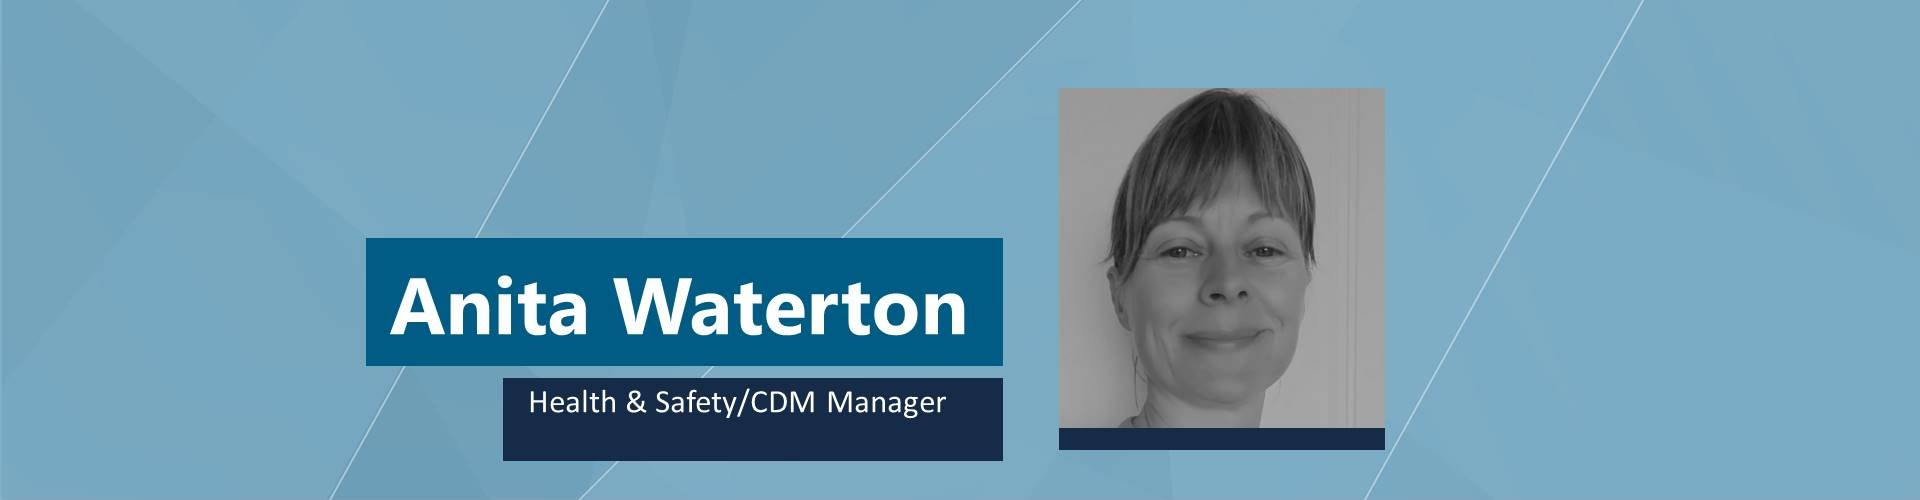 Project Centre appoints Anita Waterton as Health and Safety/CDM Manager